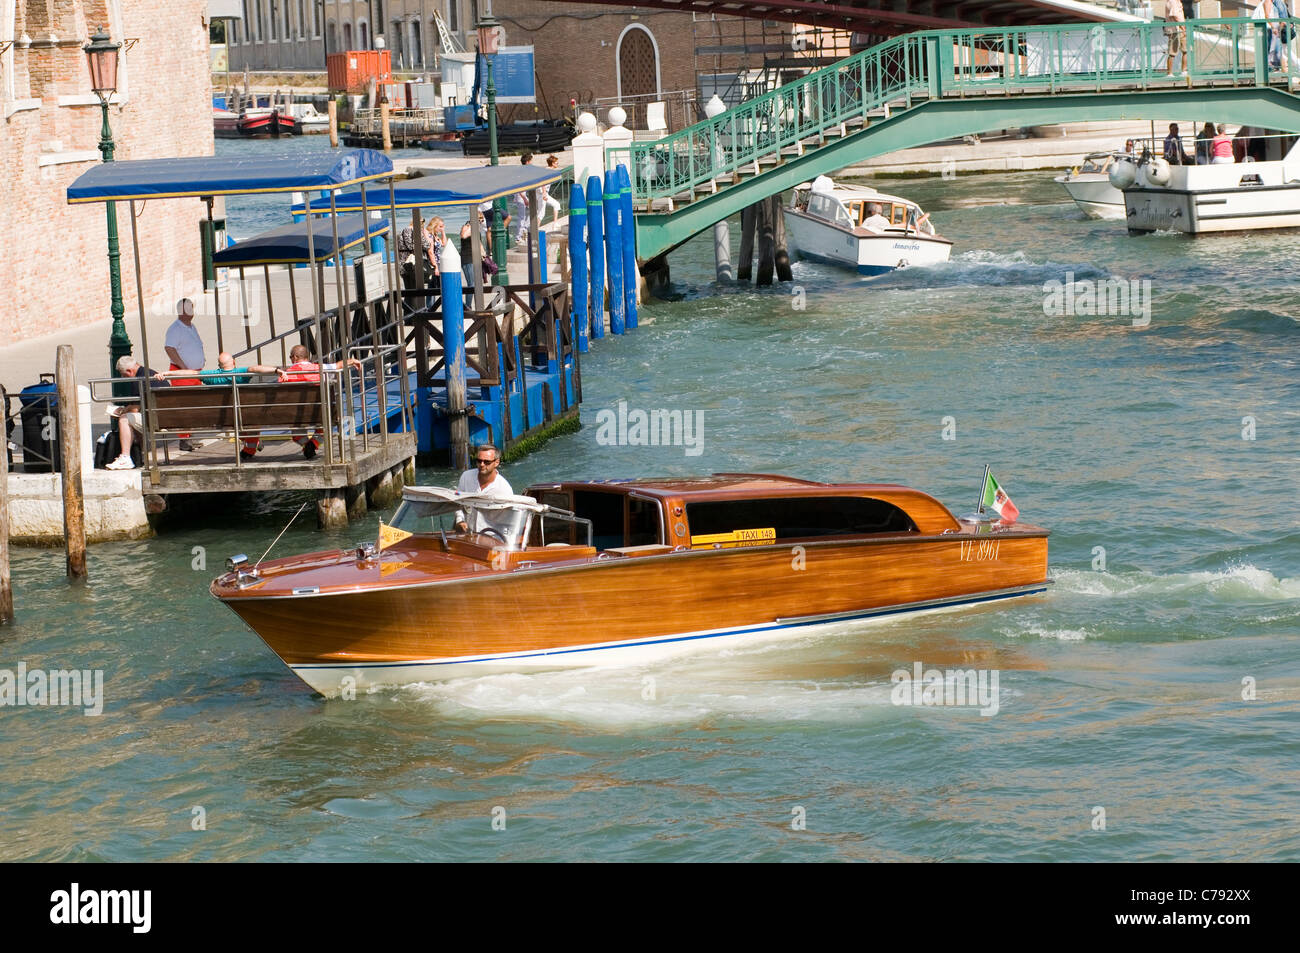 water taxi boat boats venice italy italian taxis canal canals stock